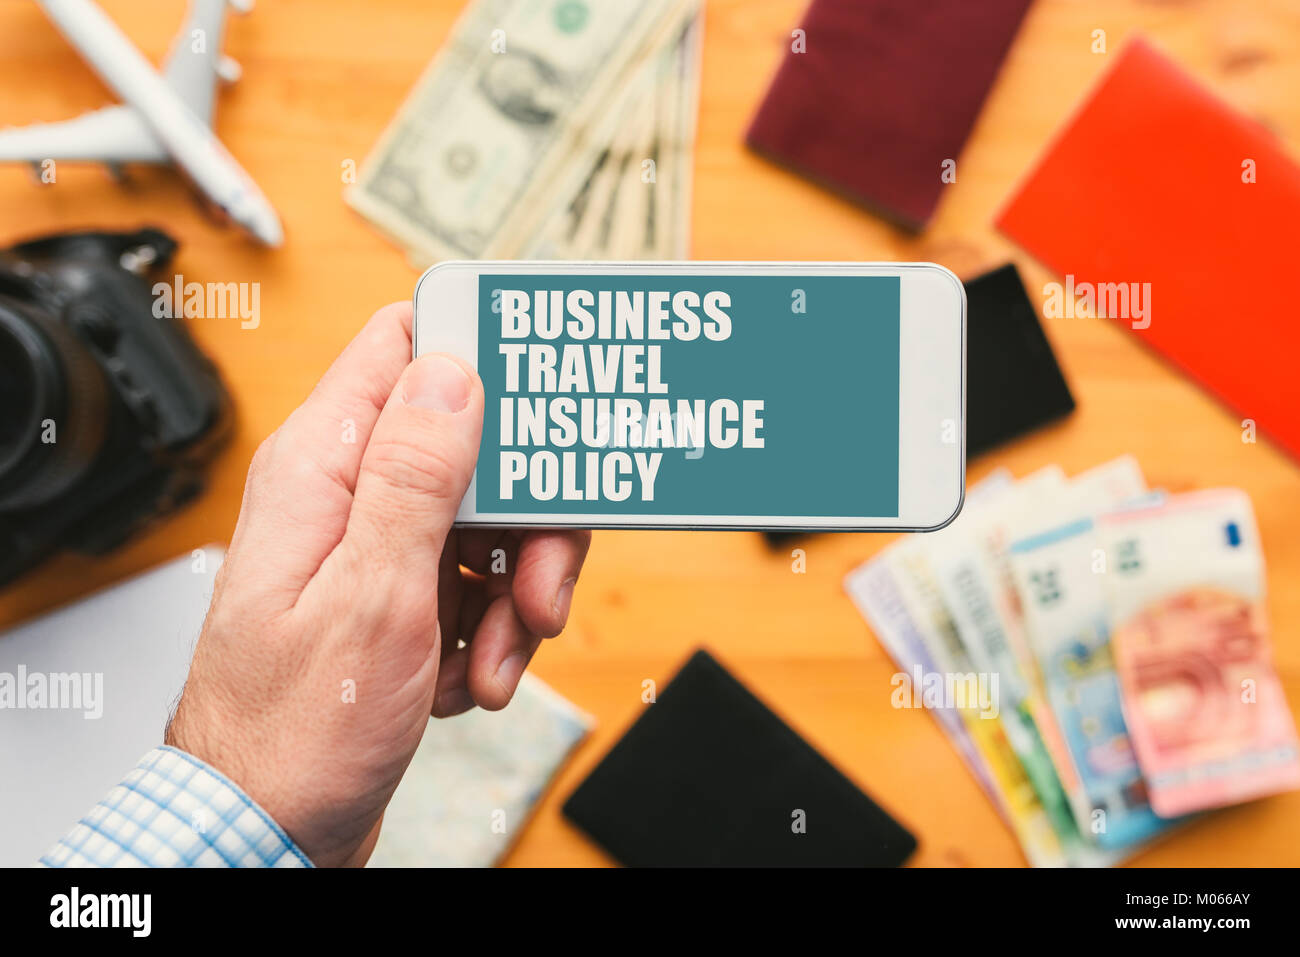 Business travel insurance policy online mobile app. Man holding smartphone with mock up application screen related - Stock Image